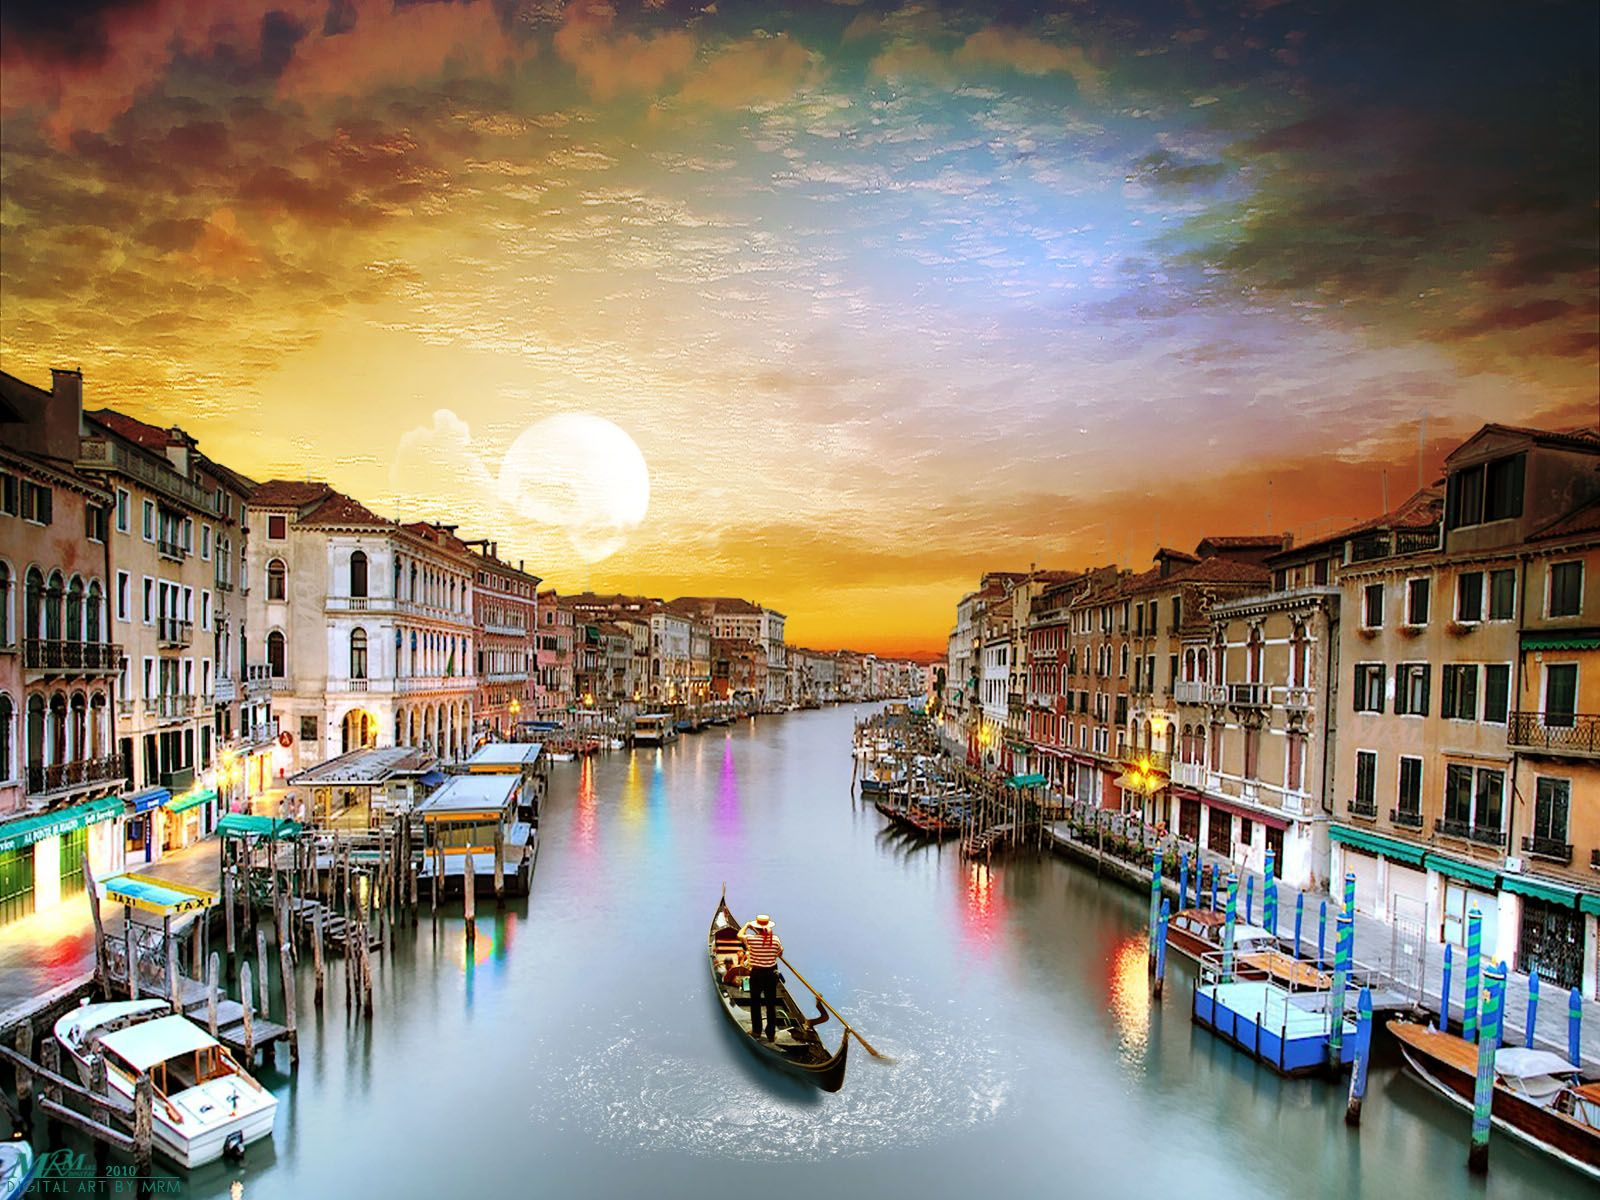 image detail for 88 italy wallpaper venice italy wallpaper photo manipulation by mrm